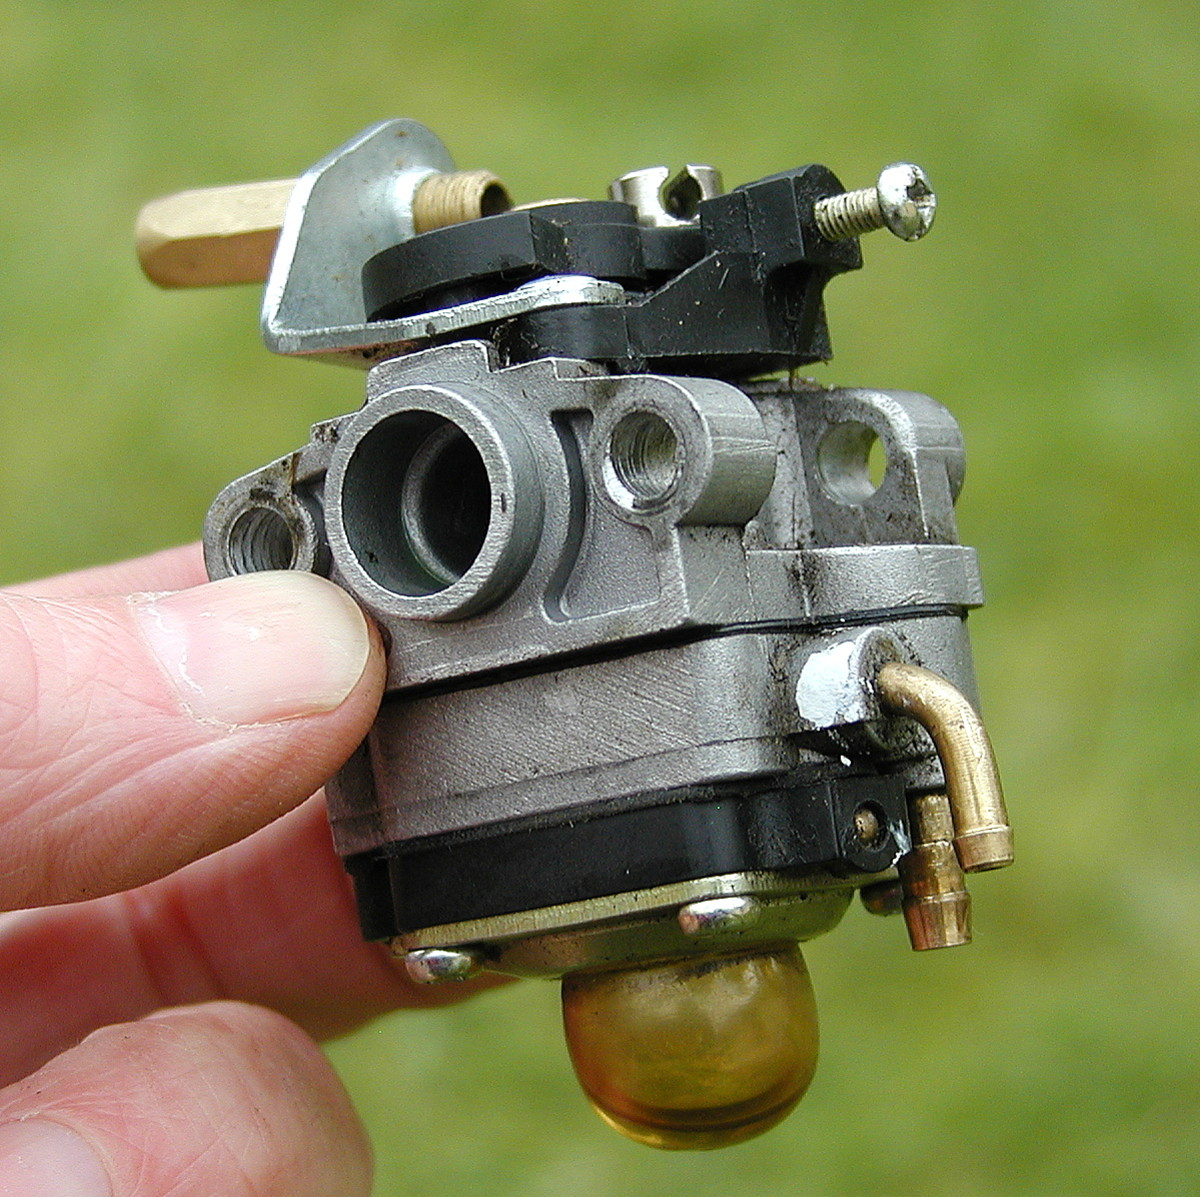 String Trimmer Won't Work - 2-Stroke Engine and Carburetor Troubleshooting